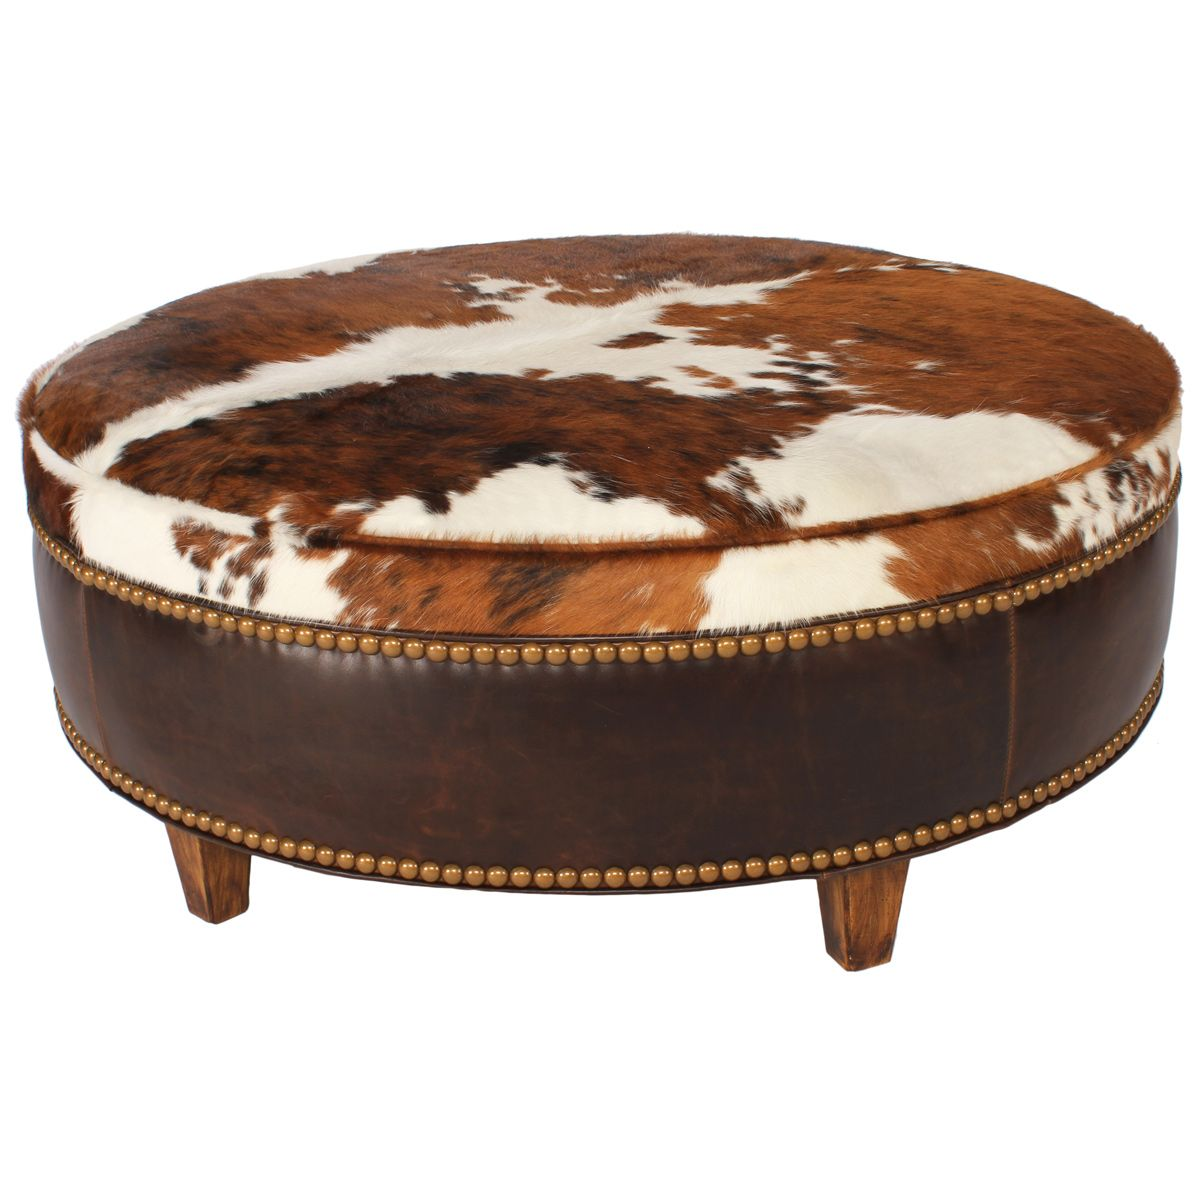 Ranch Collection Round Tricolor Cowhide Ottoman - 36 Inch